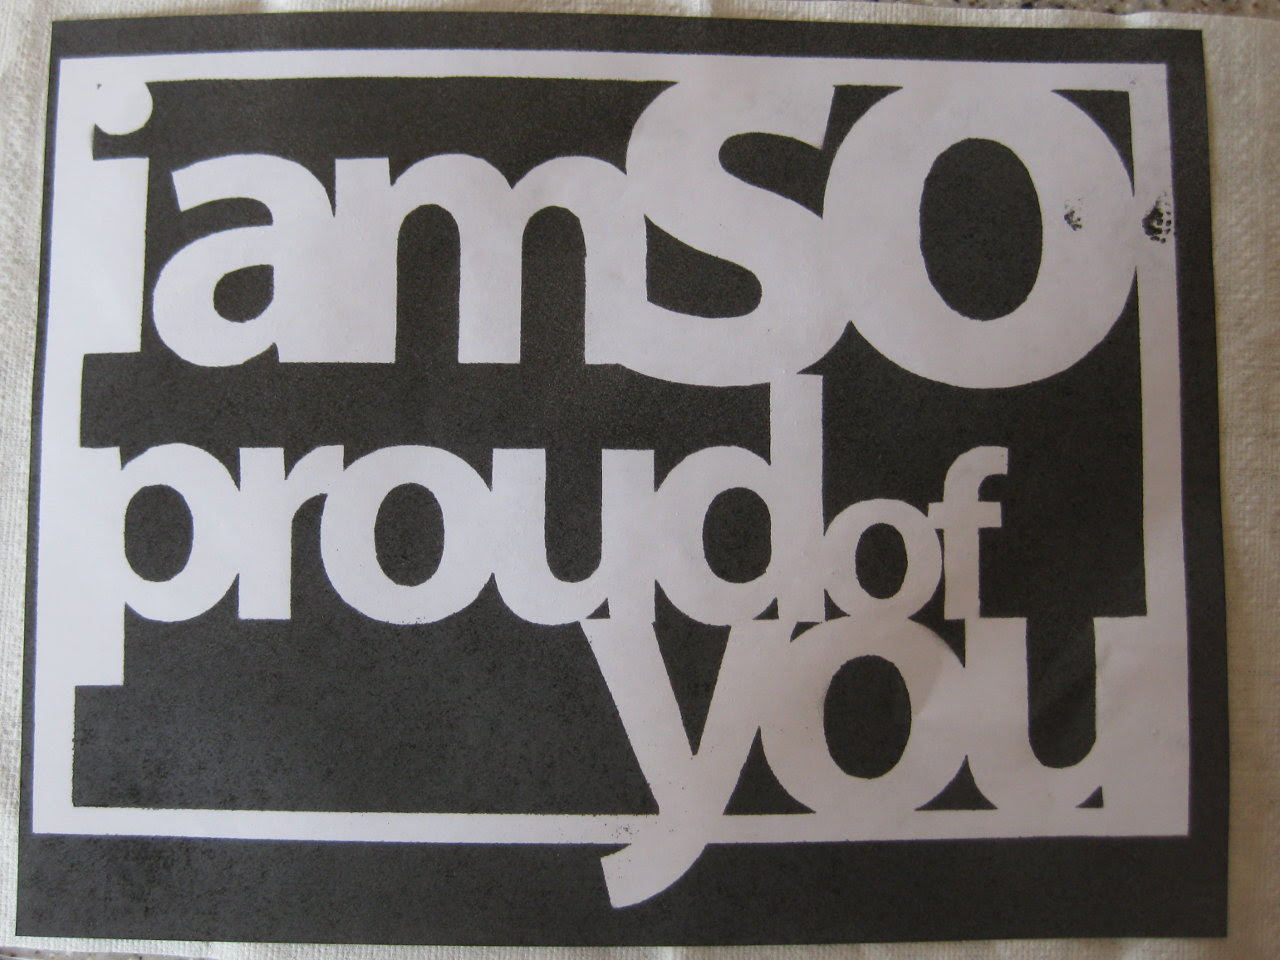 So Proud Of You Quotes Image Result For So Proud Of You Quotes